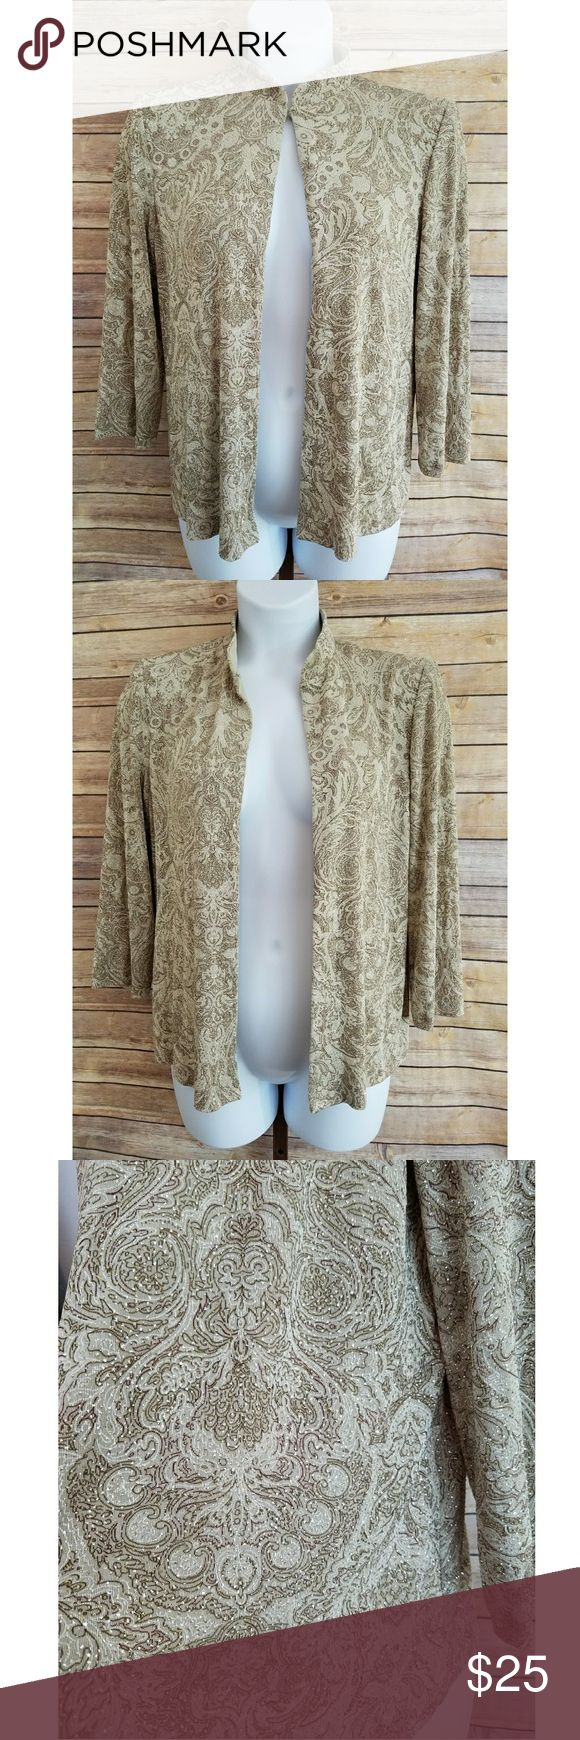 "Alex Evenings Womens Large Dressy Glitter Jacket Stunning and sparkling womens special occasion jacket from Alex Evenings! Womens size Large. Measures approximately 26"" long from shoulder and 22"" from armpit to armpit. This open jacket has shoulder pads for an elegant look. Closes at neck only. Champagne beige fabric with gold all-over glitter design. (Inside label reads this was part of a 2-piece outfit, but this listing is only for the single open jacket piece).  In excellent pre-owned…"